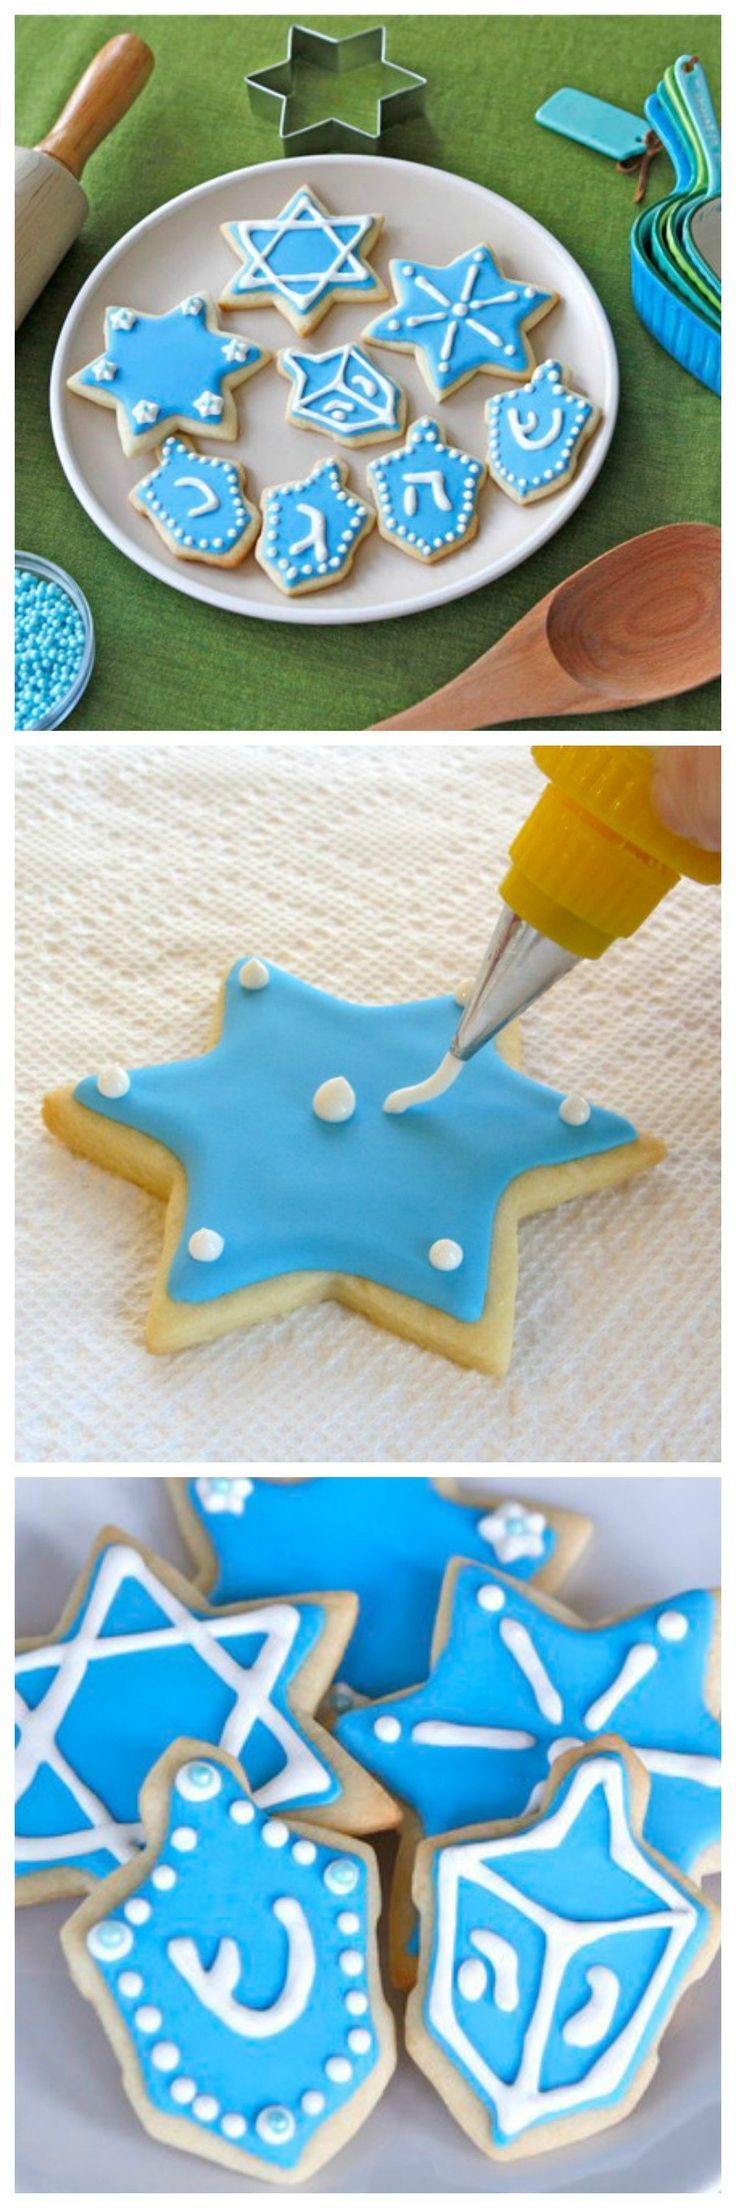 Hanukkah Holiday Sugar Cookies - Recipes and Decorating Tutorial on ToriAvey.com